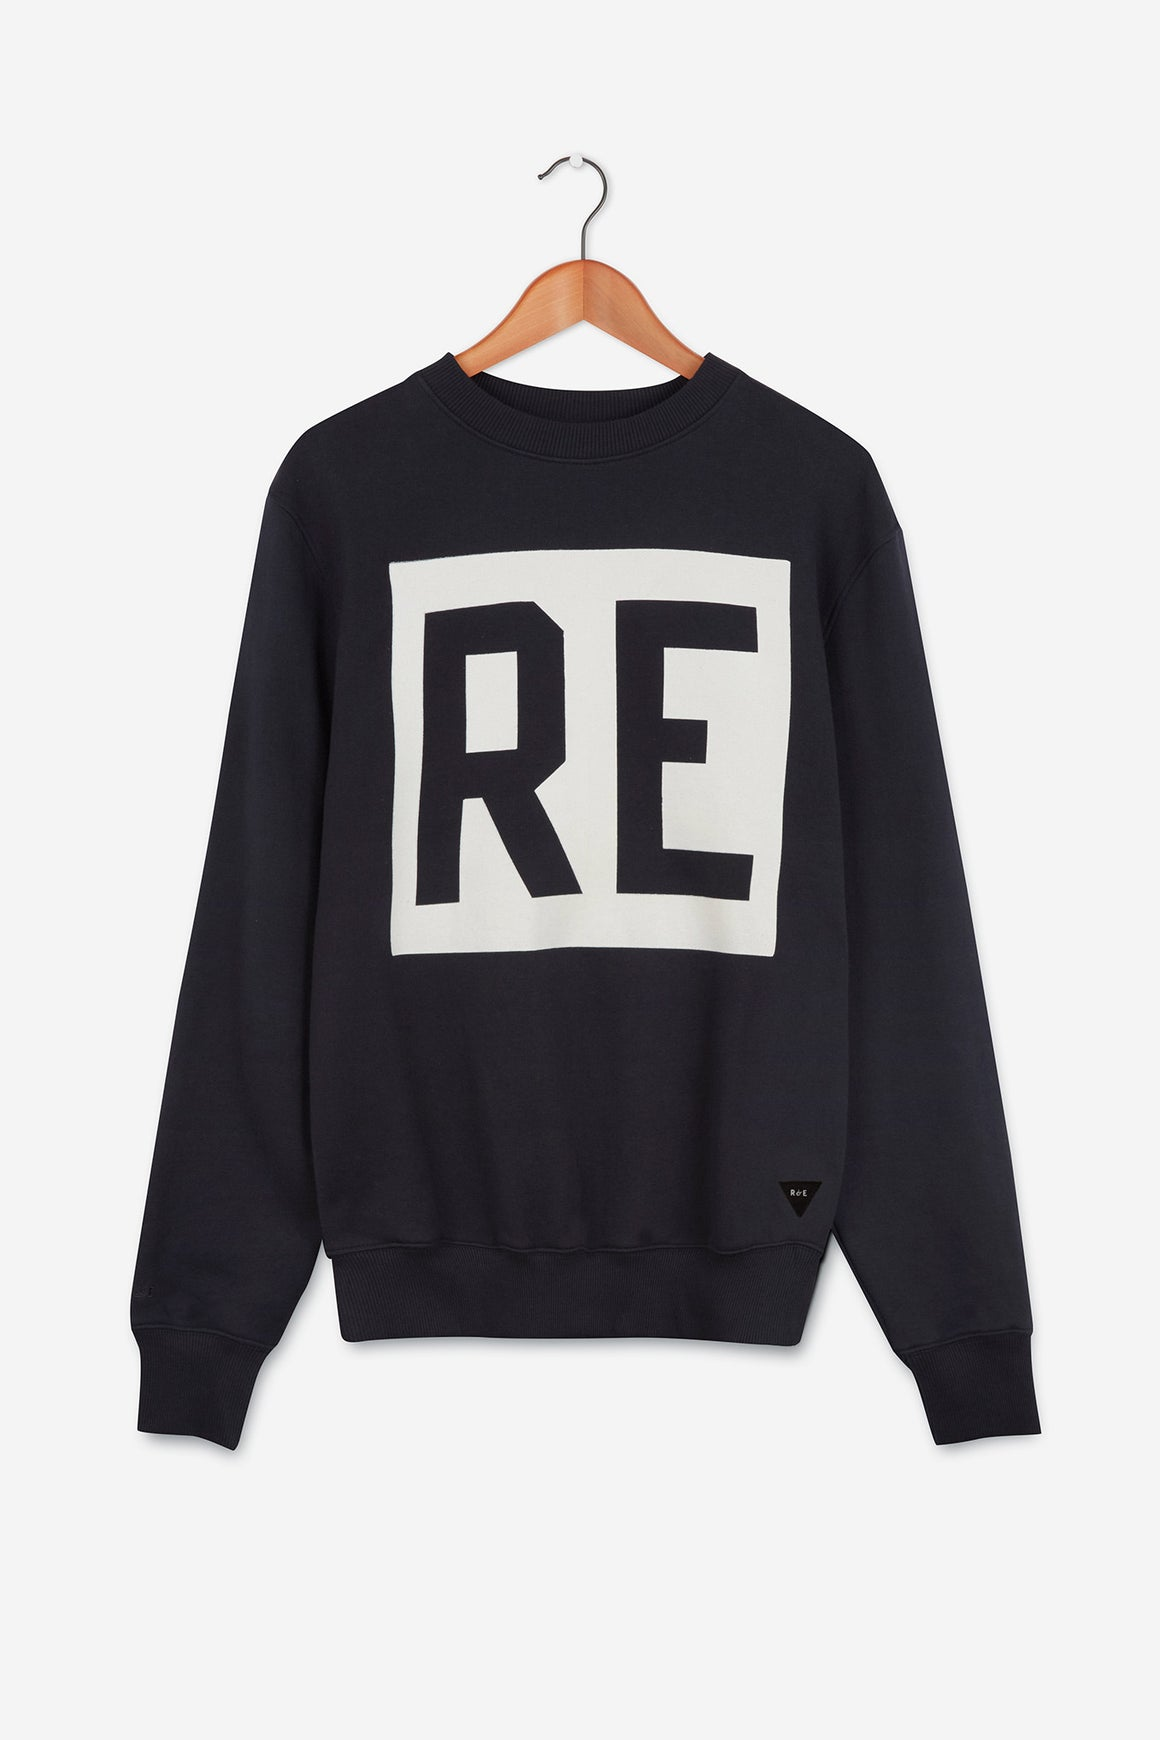 Men's Classic Logo Print Sweatshirt |  Men's Jumpers | Realm & Empire British Menswear